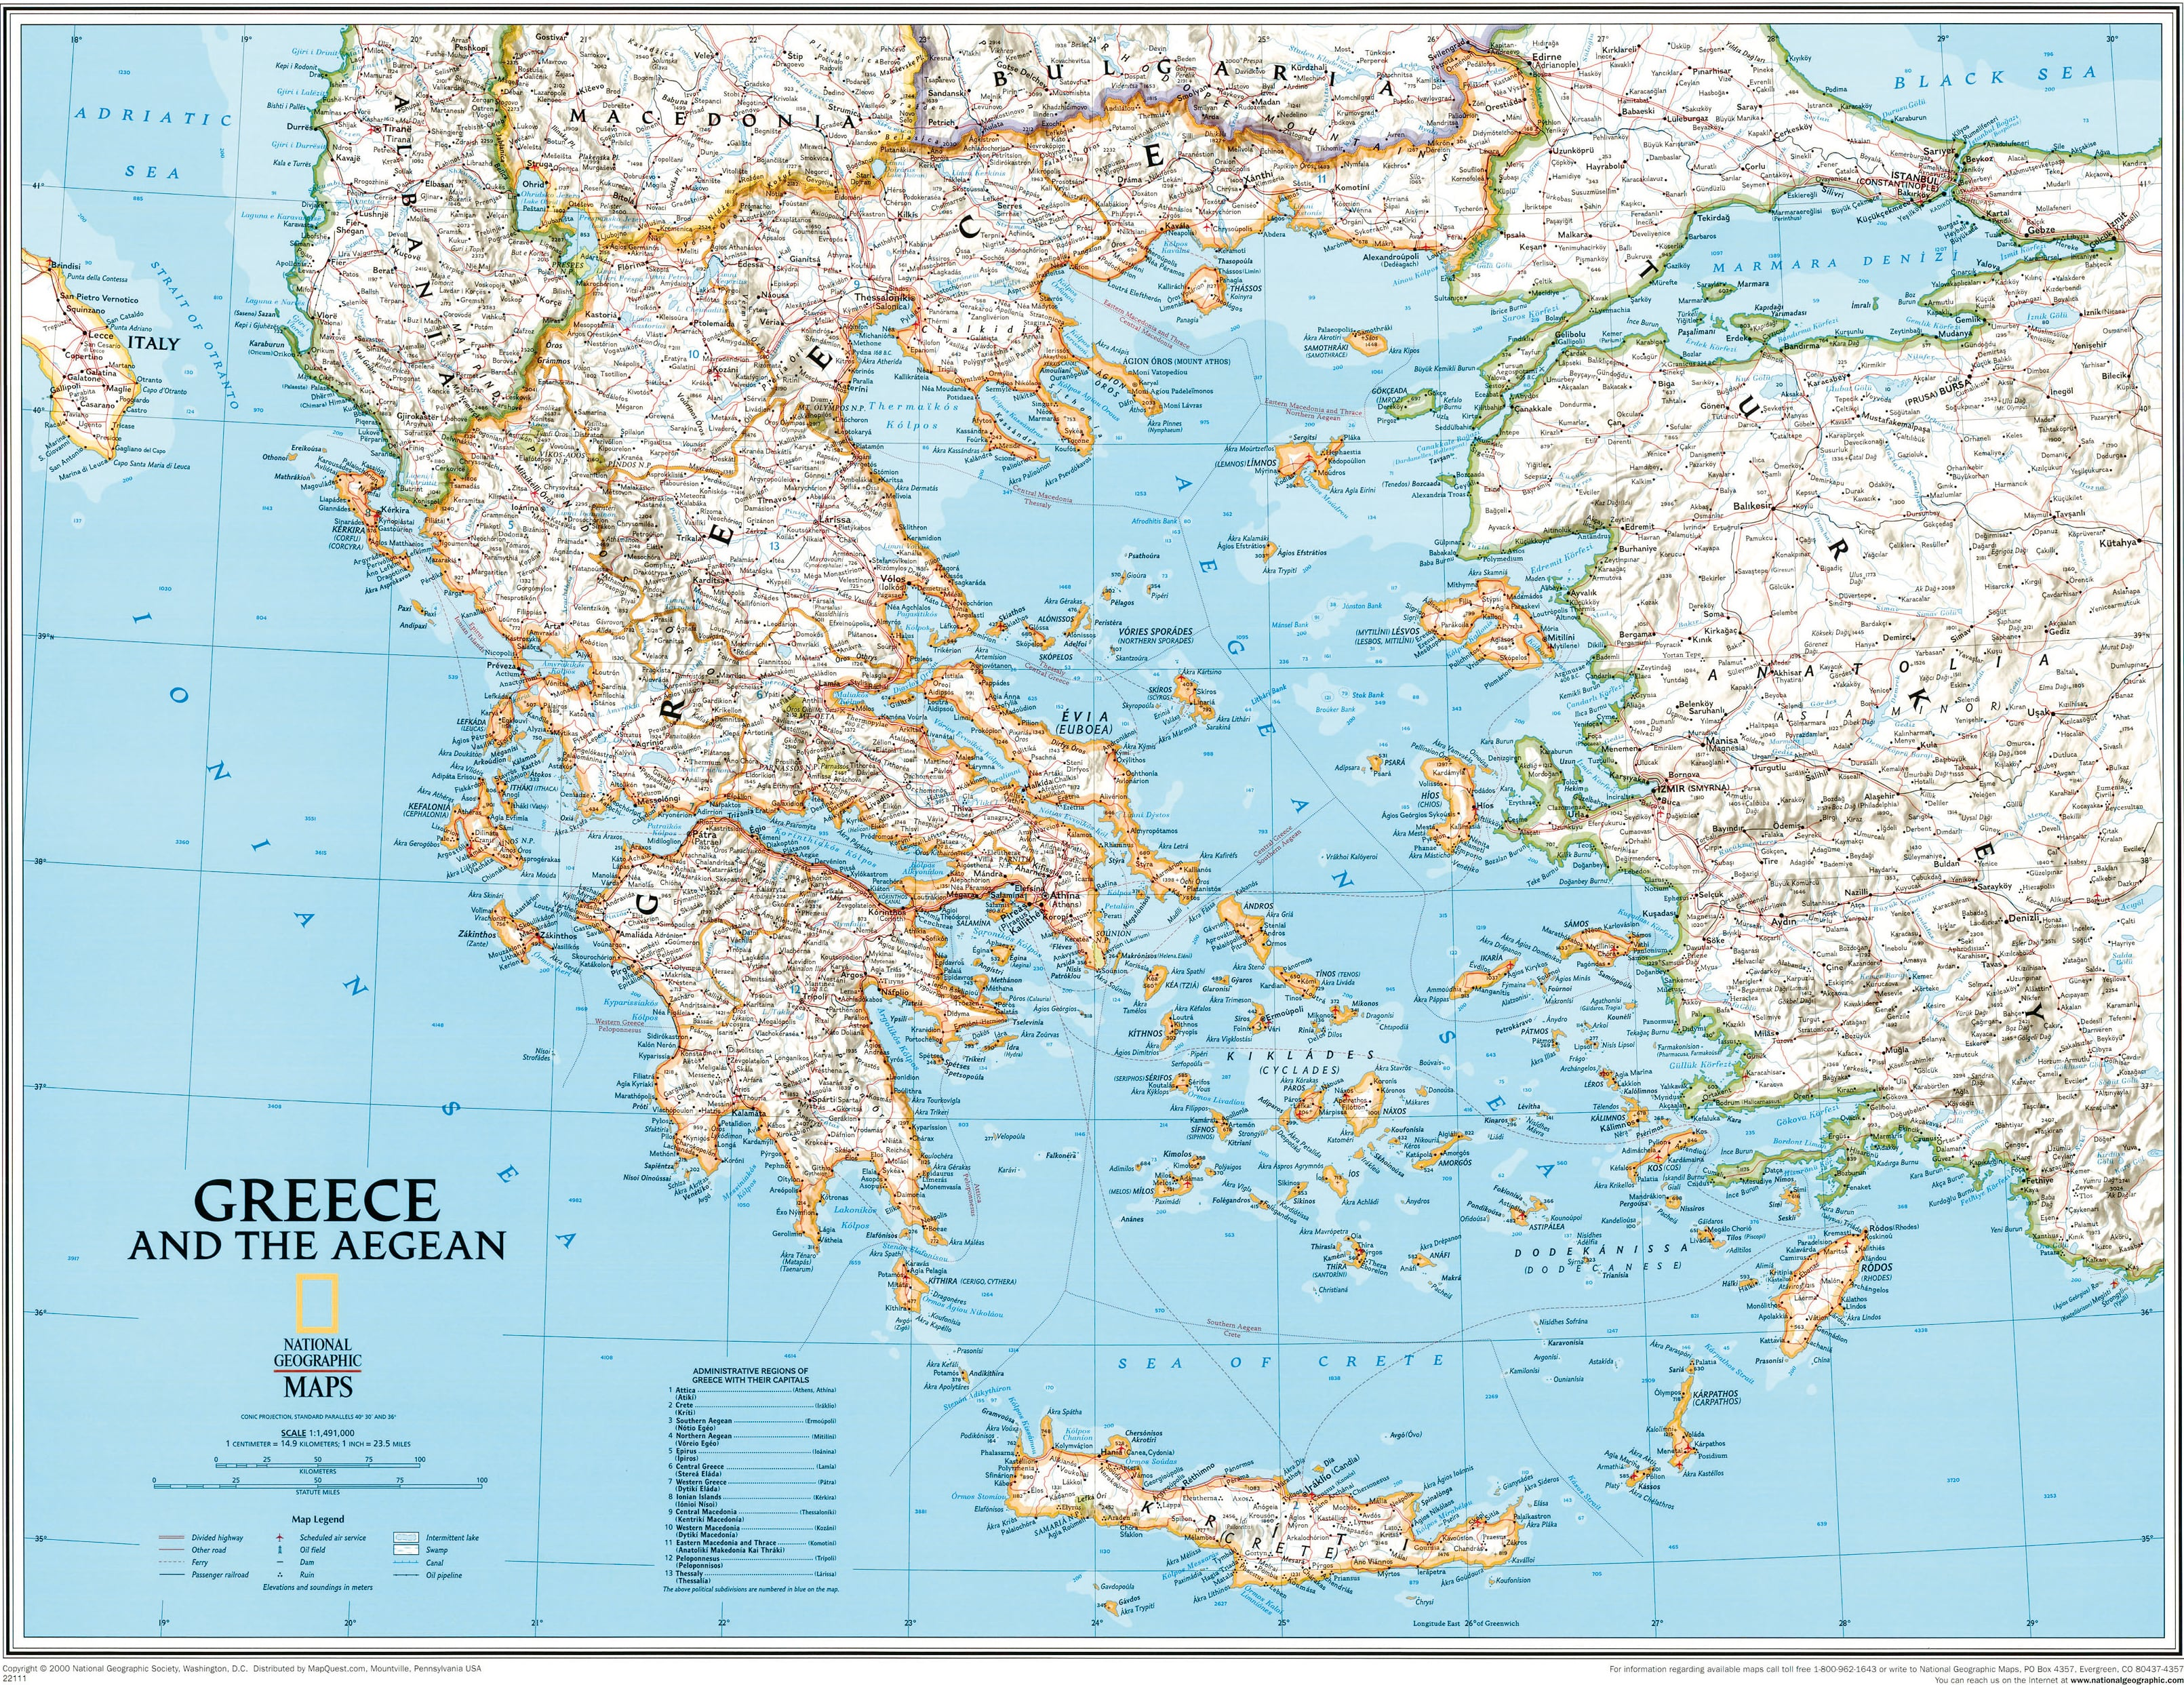 Greece Wall Map - Southeurope Countries - Europe - Wall Maps on